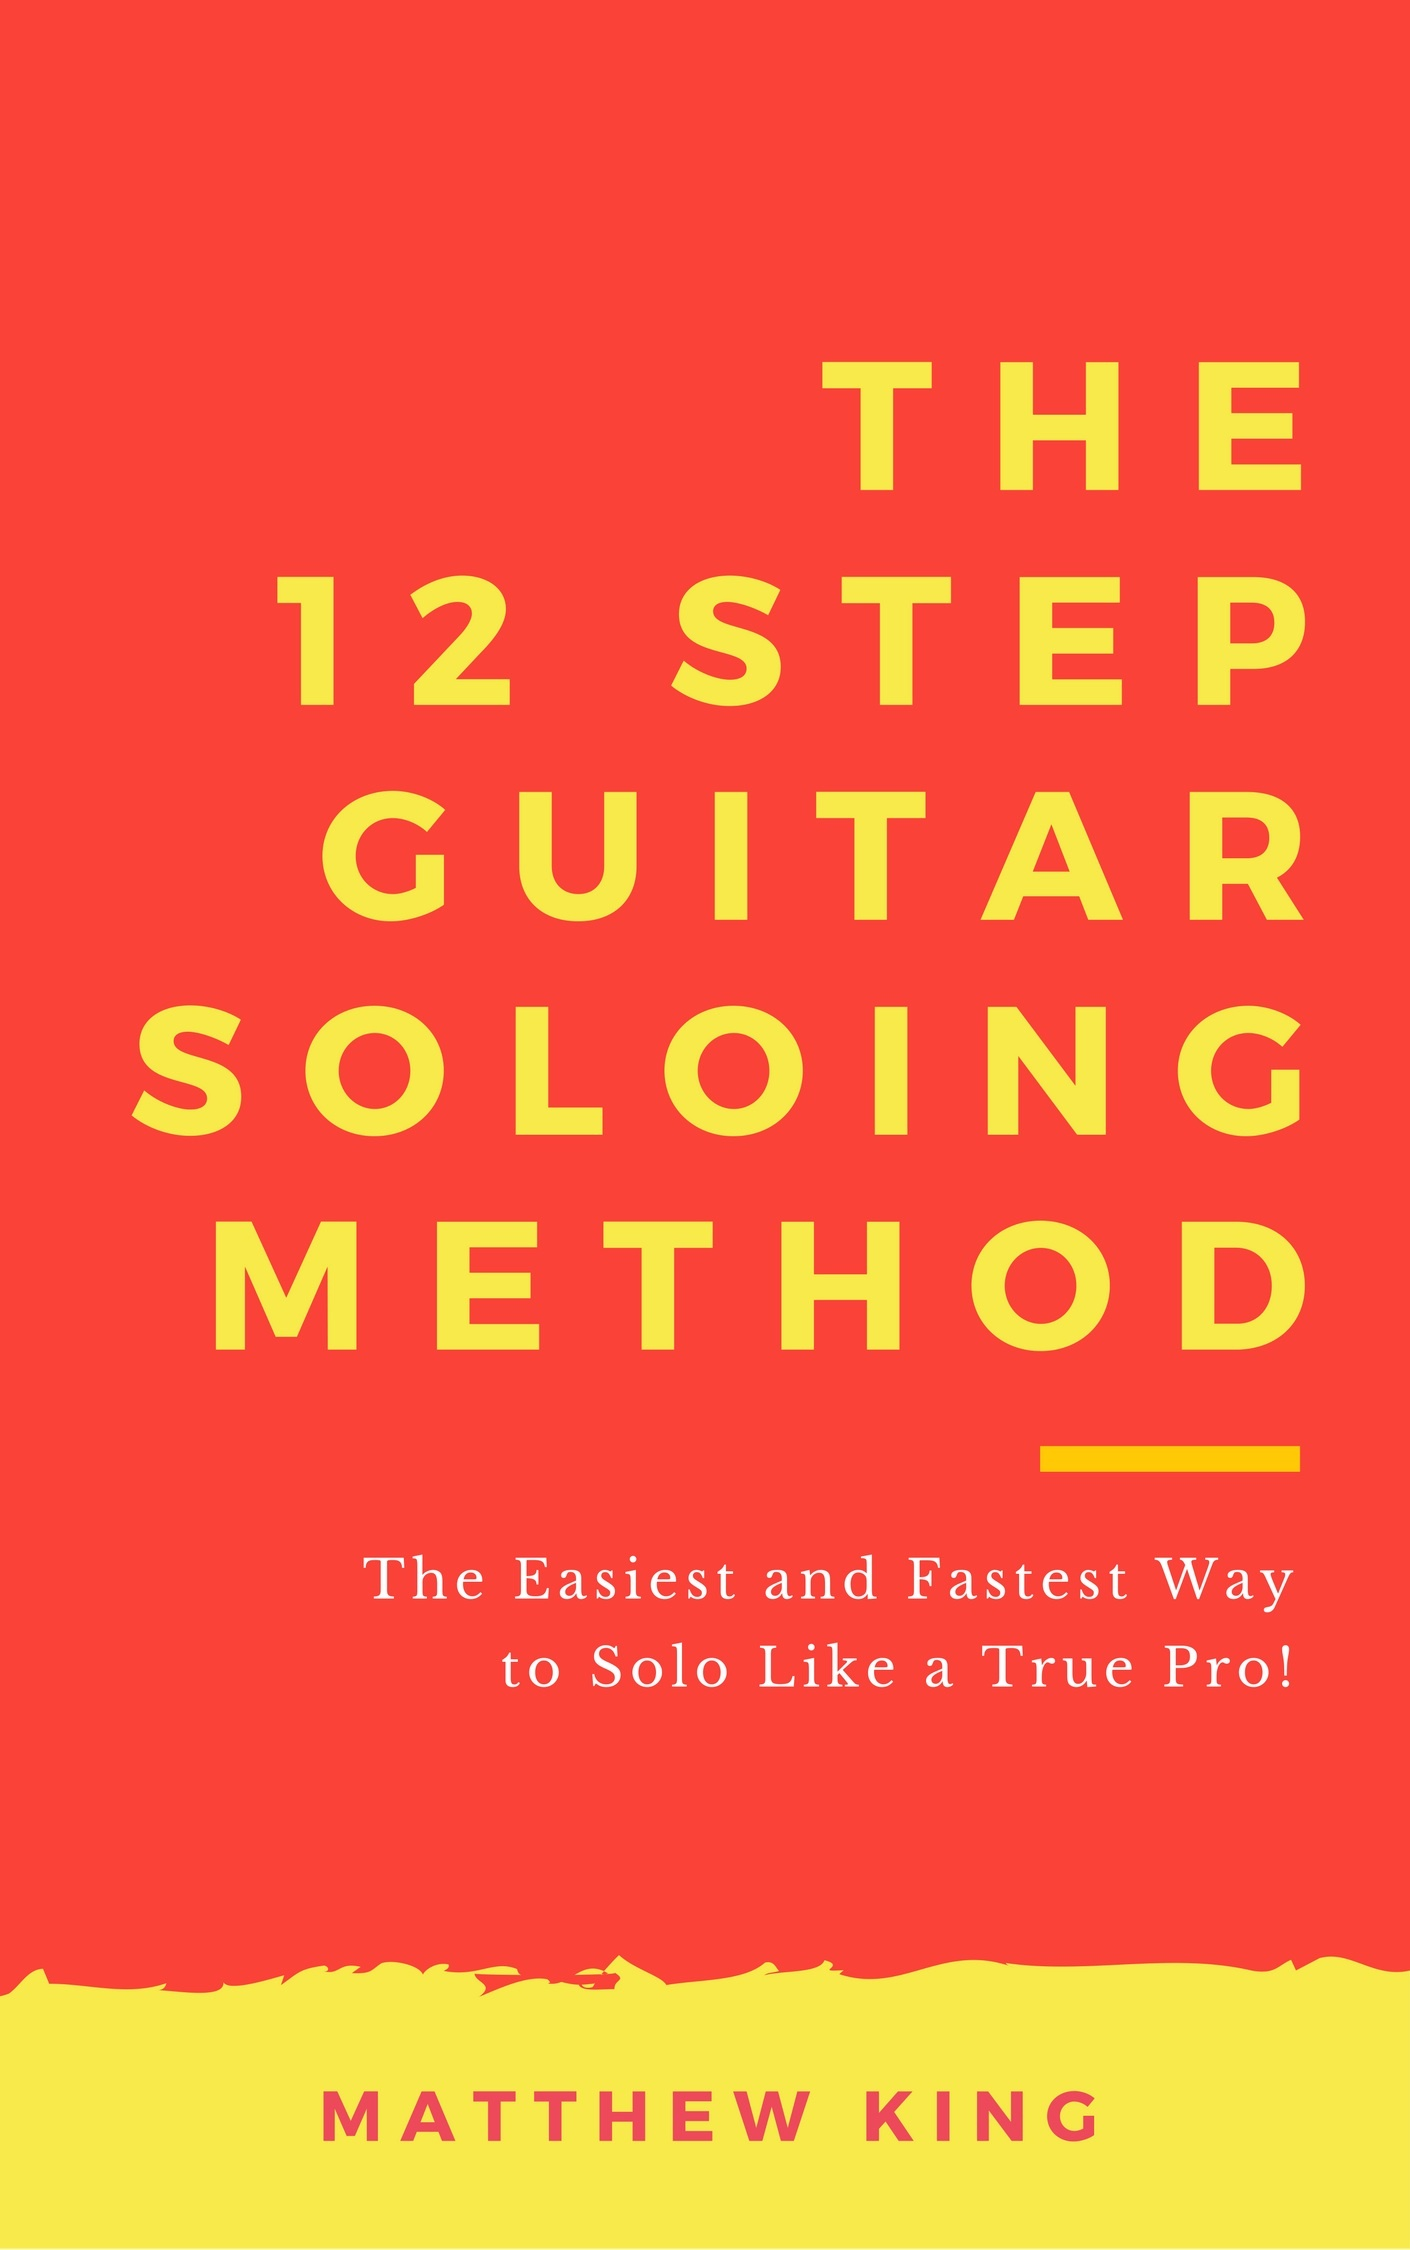 The 12 Step Guitar Soloing Method Kindle Cover 2